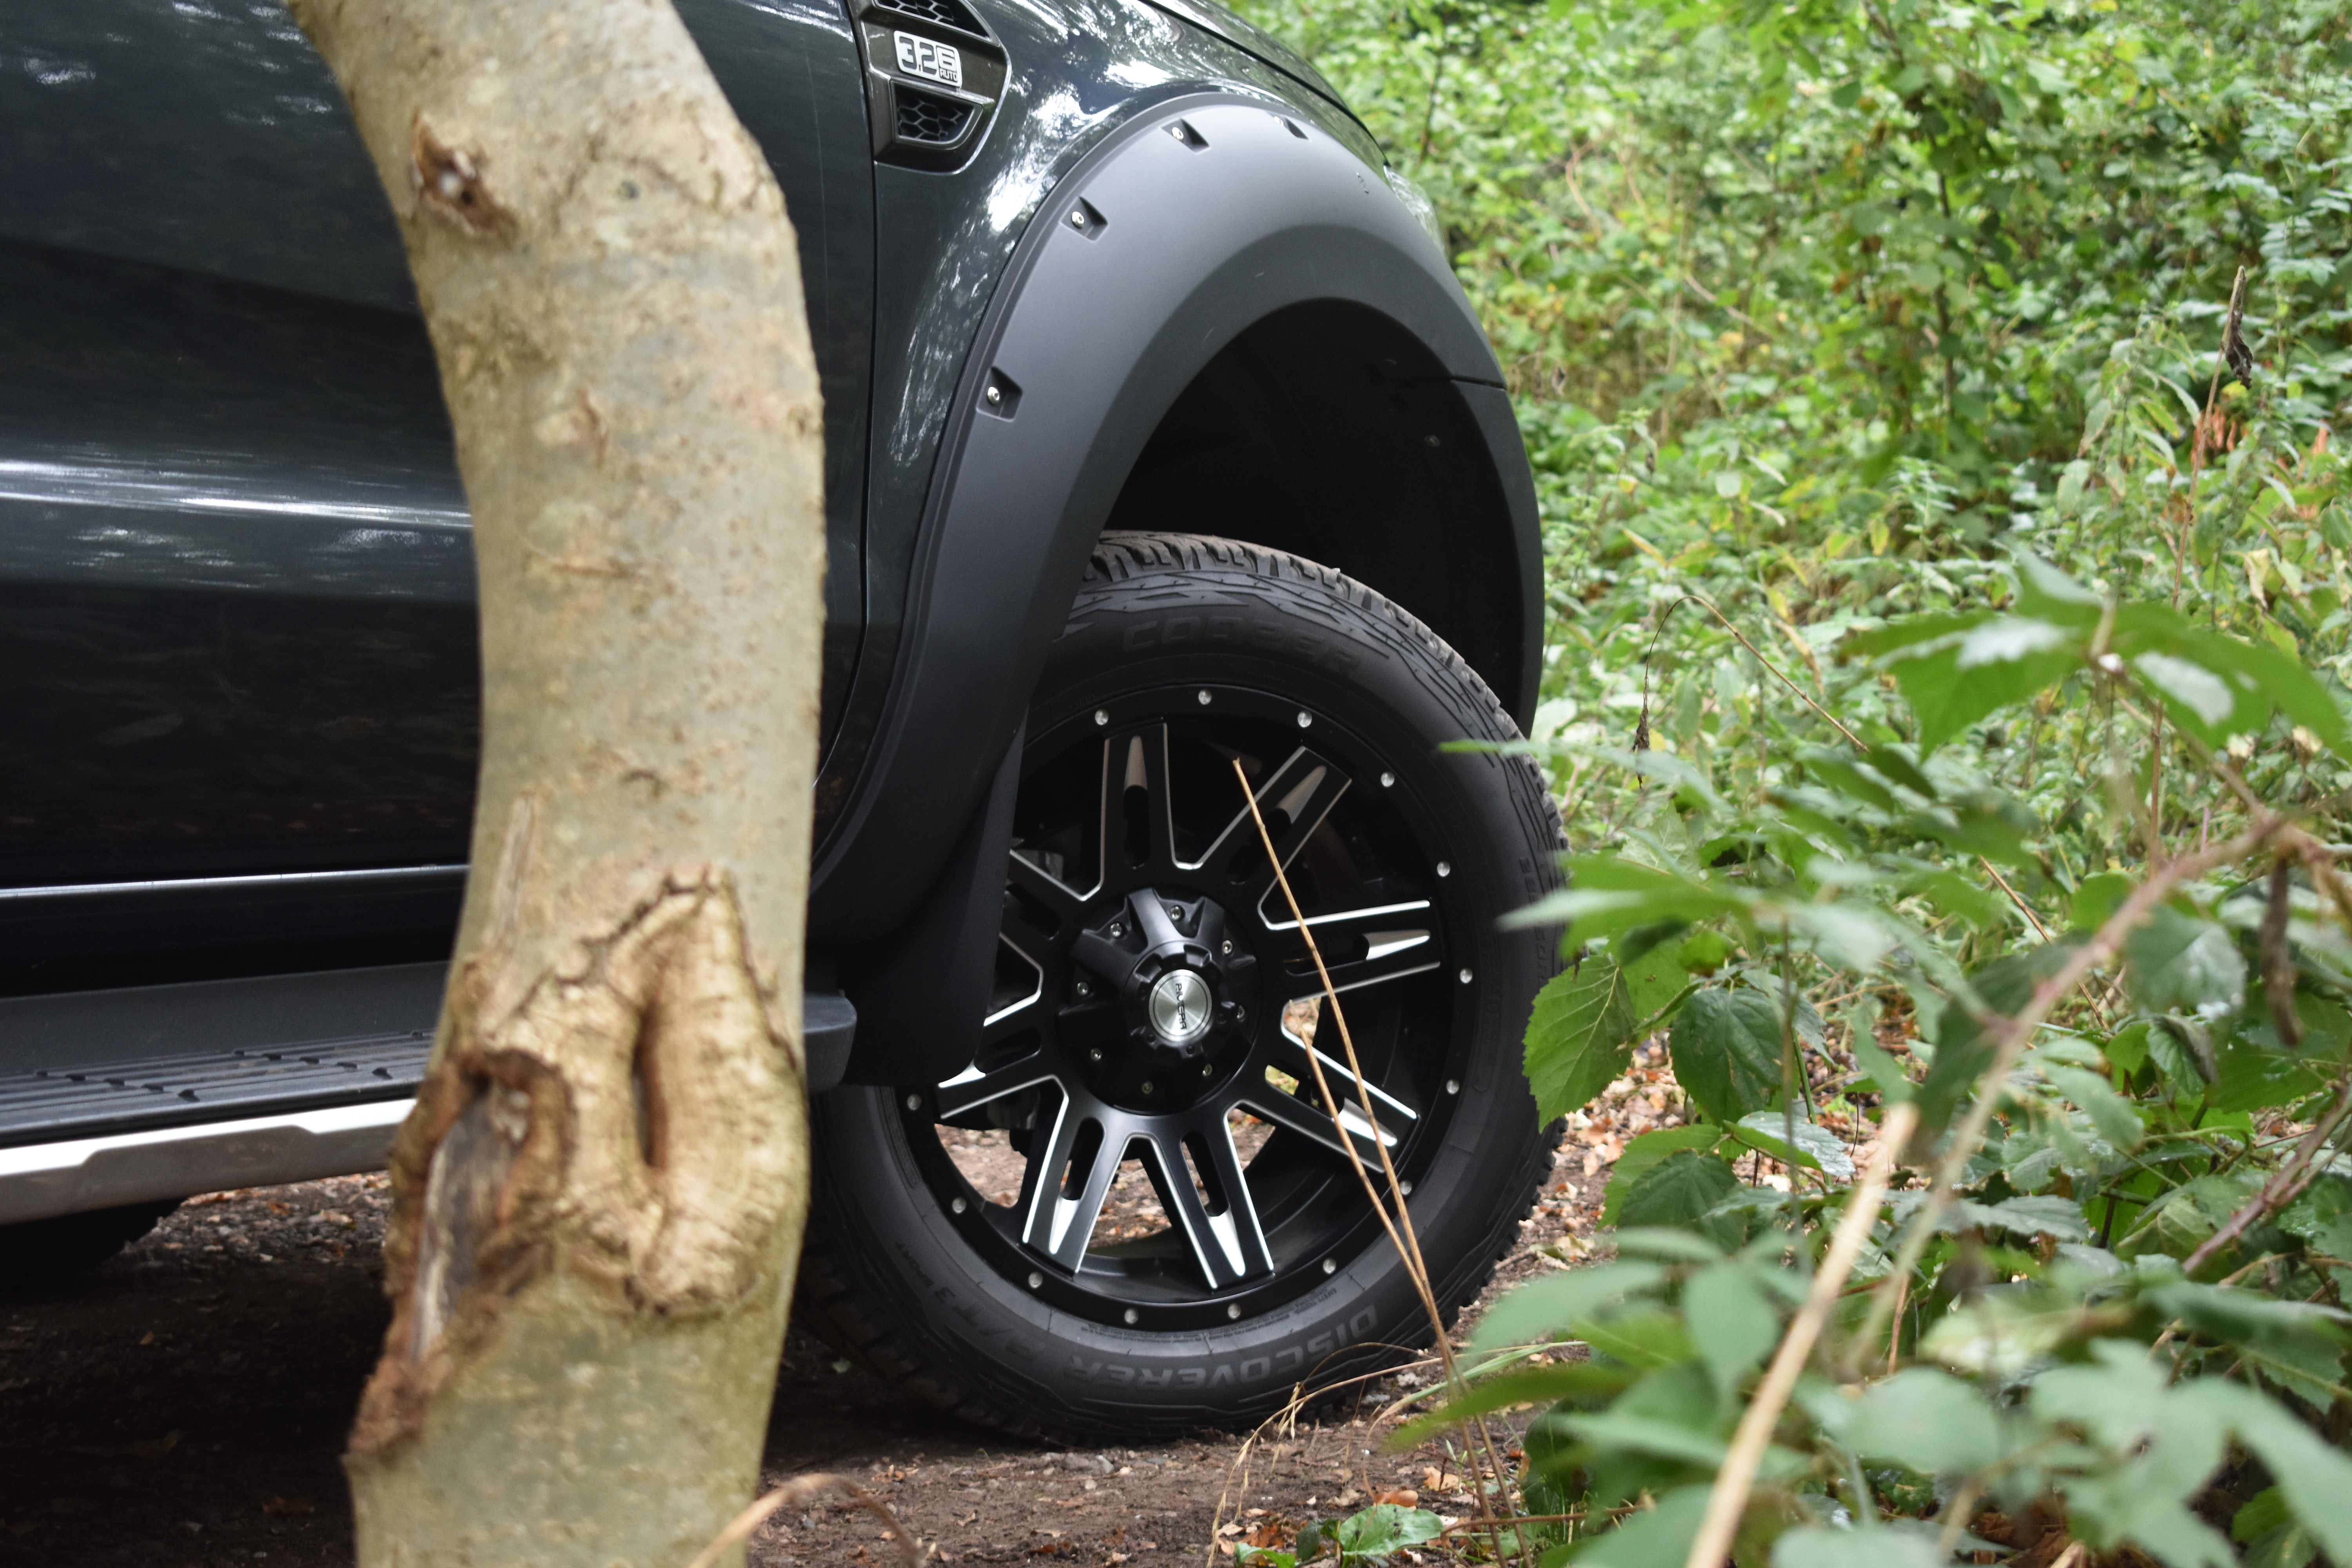 Ford Ranger Wildtrak Alloys Tyres and Wide Body Kit